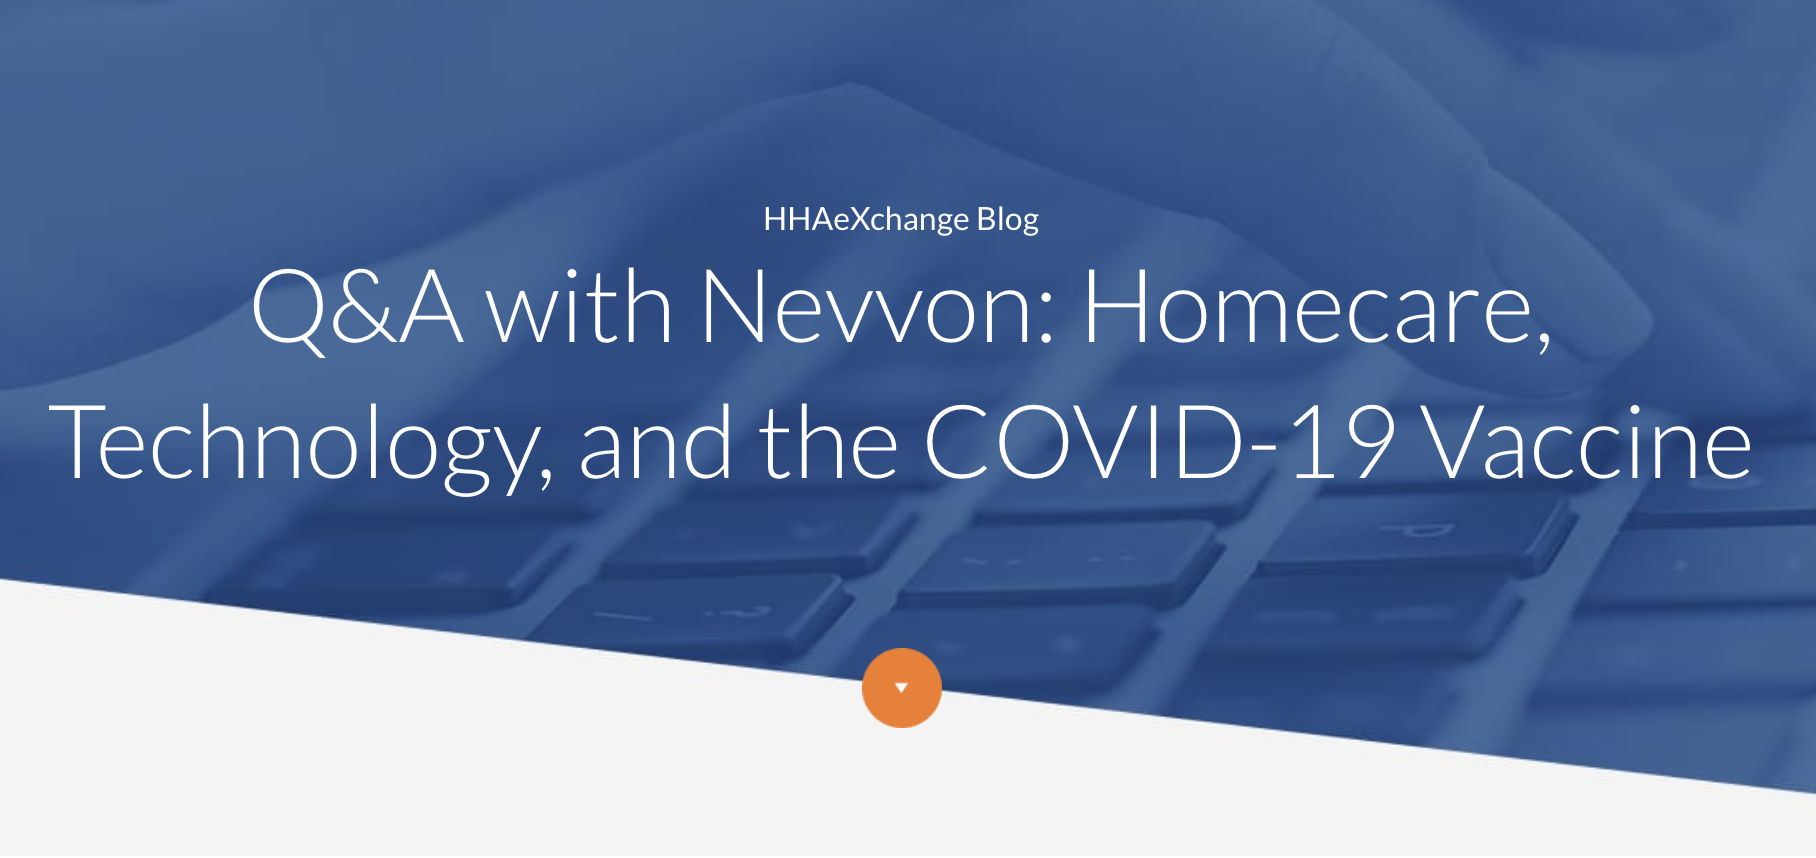 Q&A with Nevvon: Homecare, Technology, and the COVID-19 Vaccine